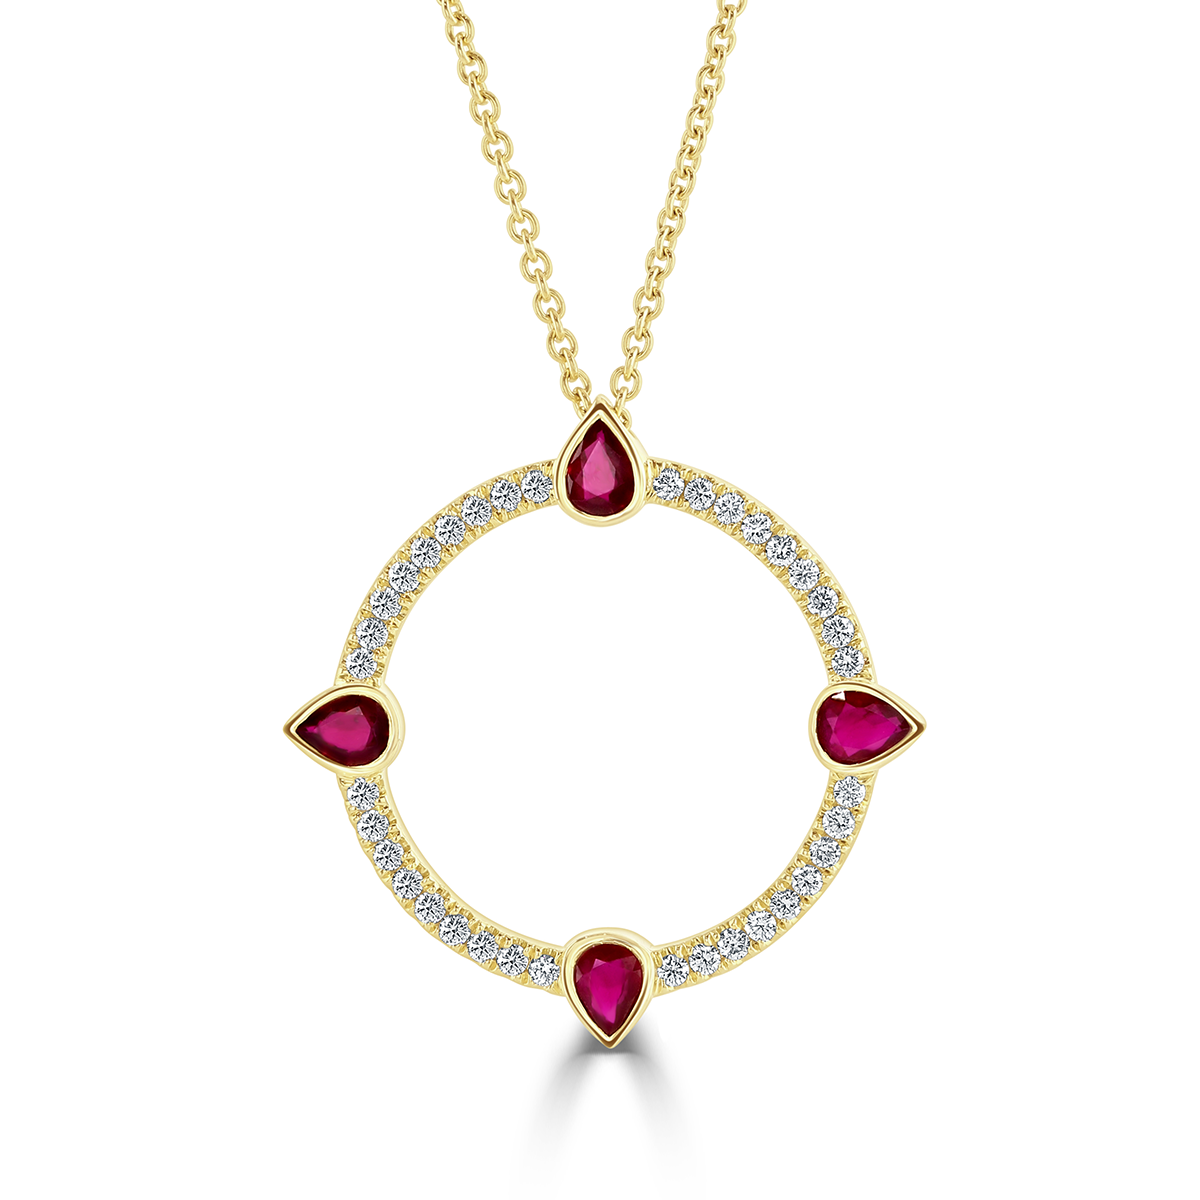 Compass White Gold Large Diamond and Ruby Pendant